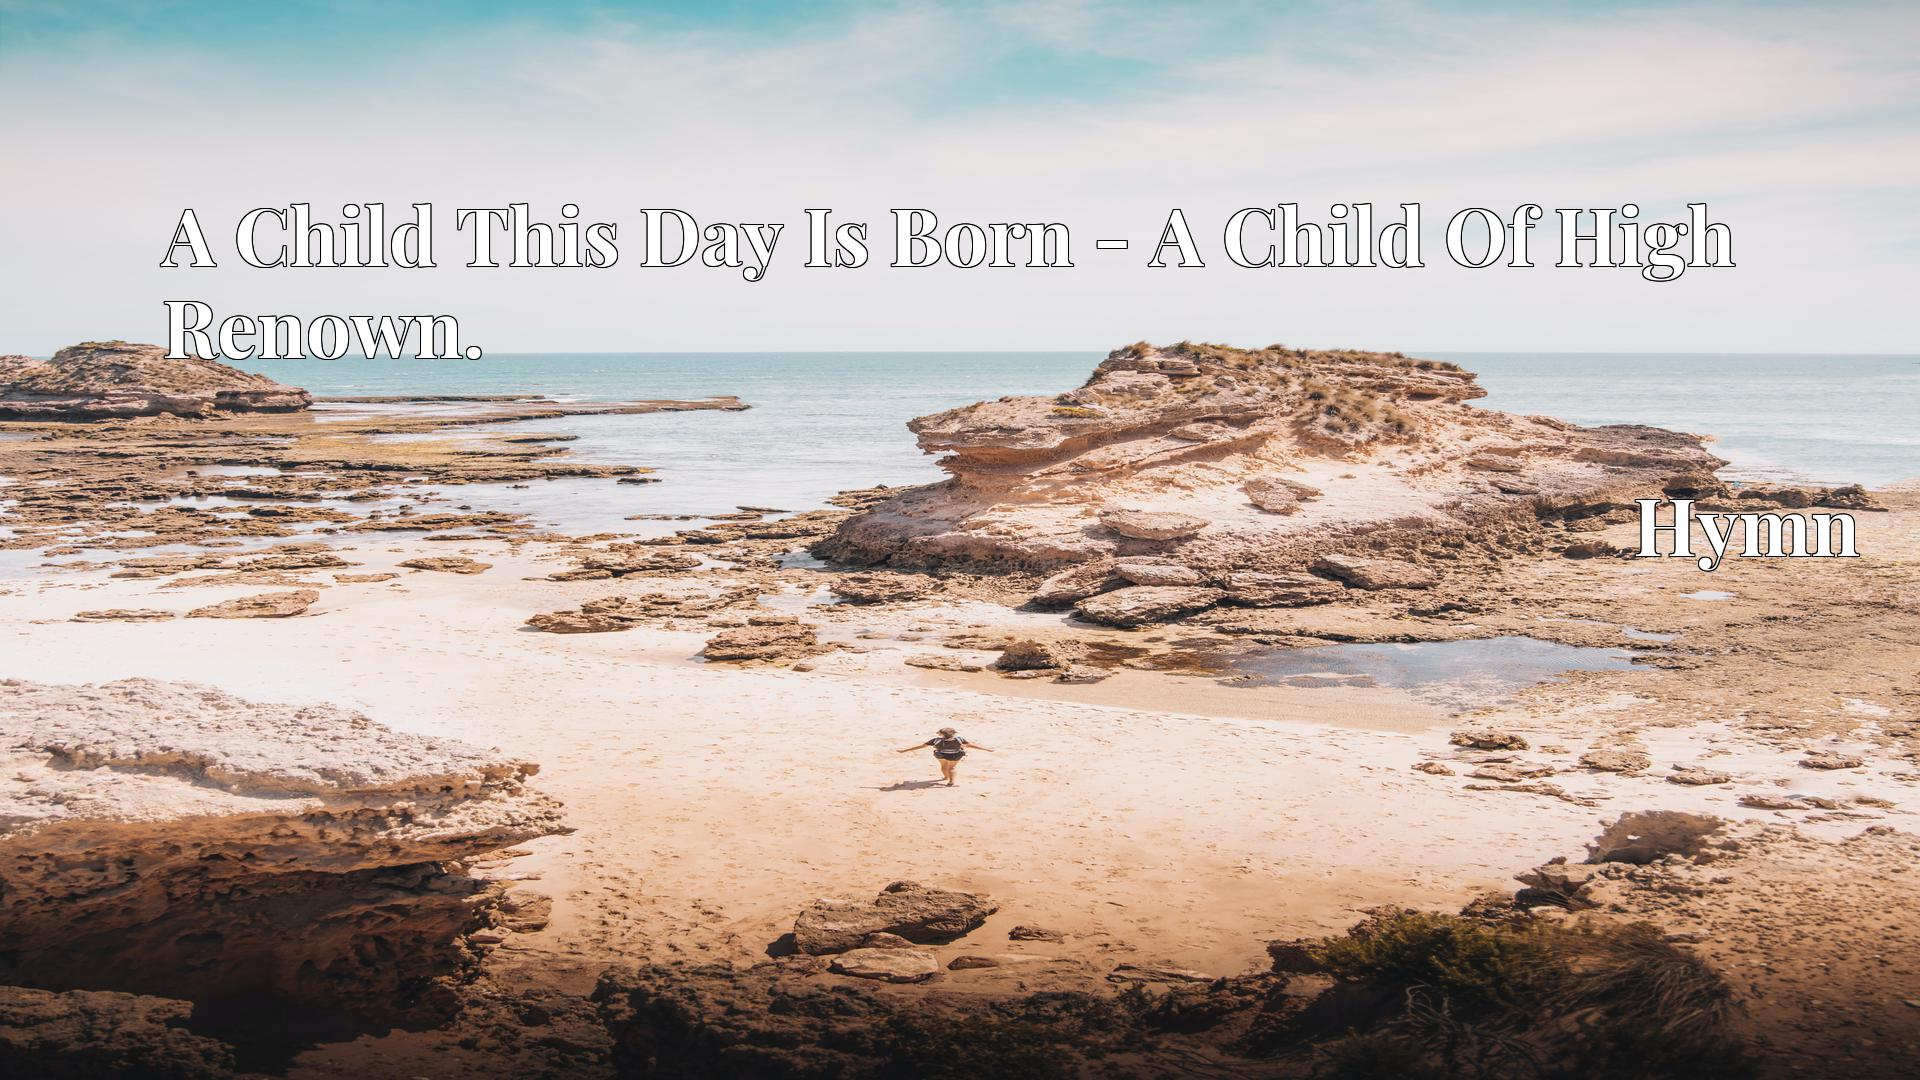 A Child This Day Is Born - A Child Of High Renown. - Hymn